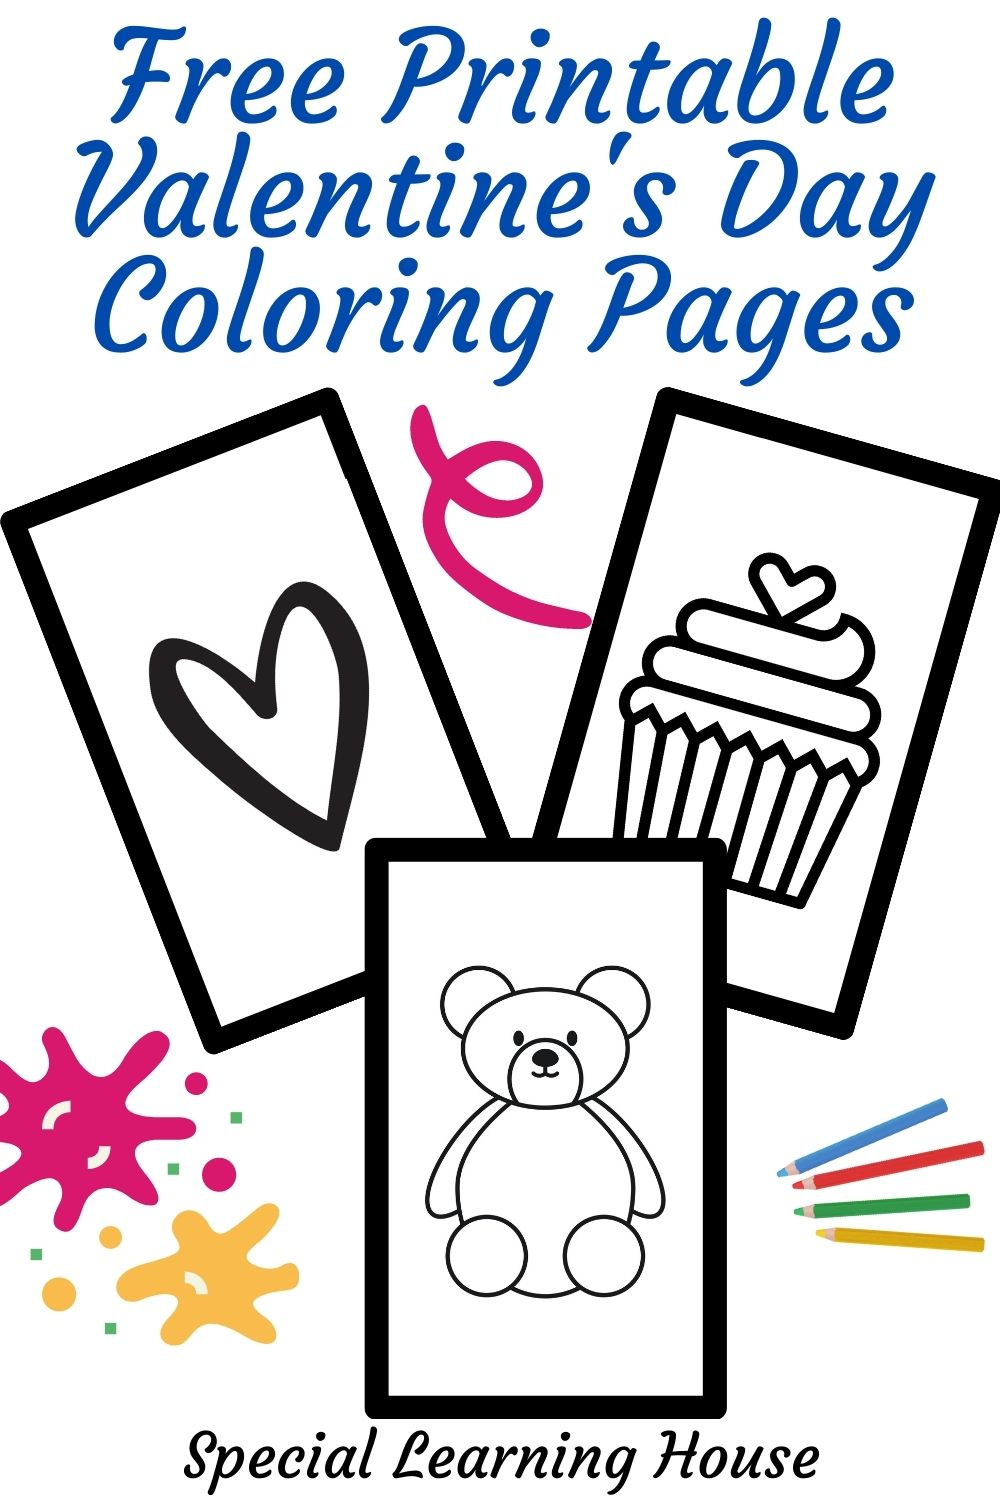 Free Printable Valentine's Day Coloring Pages - Special Learning House